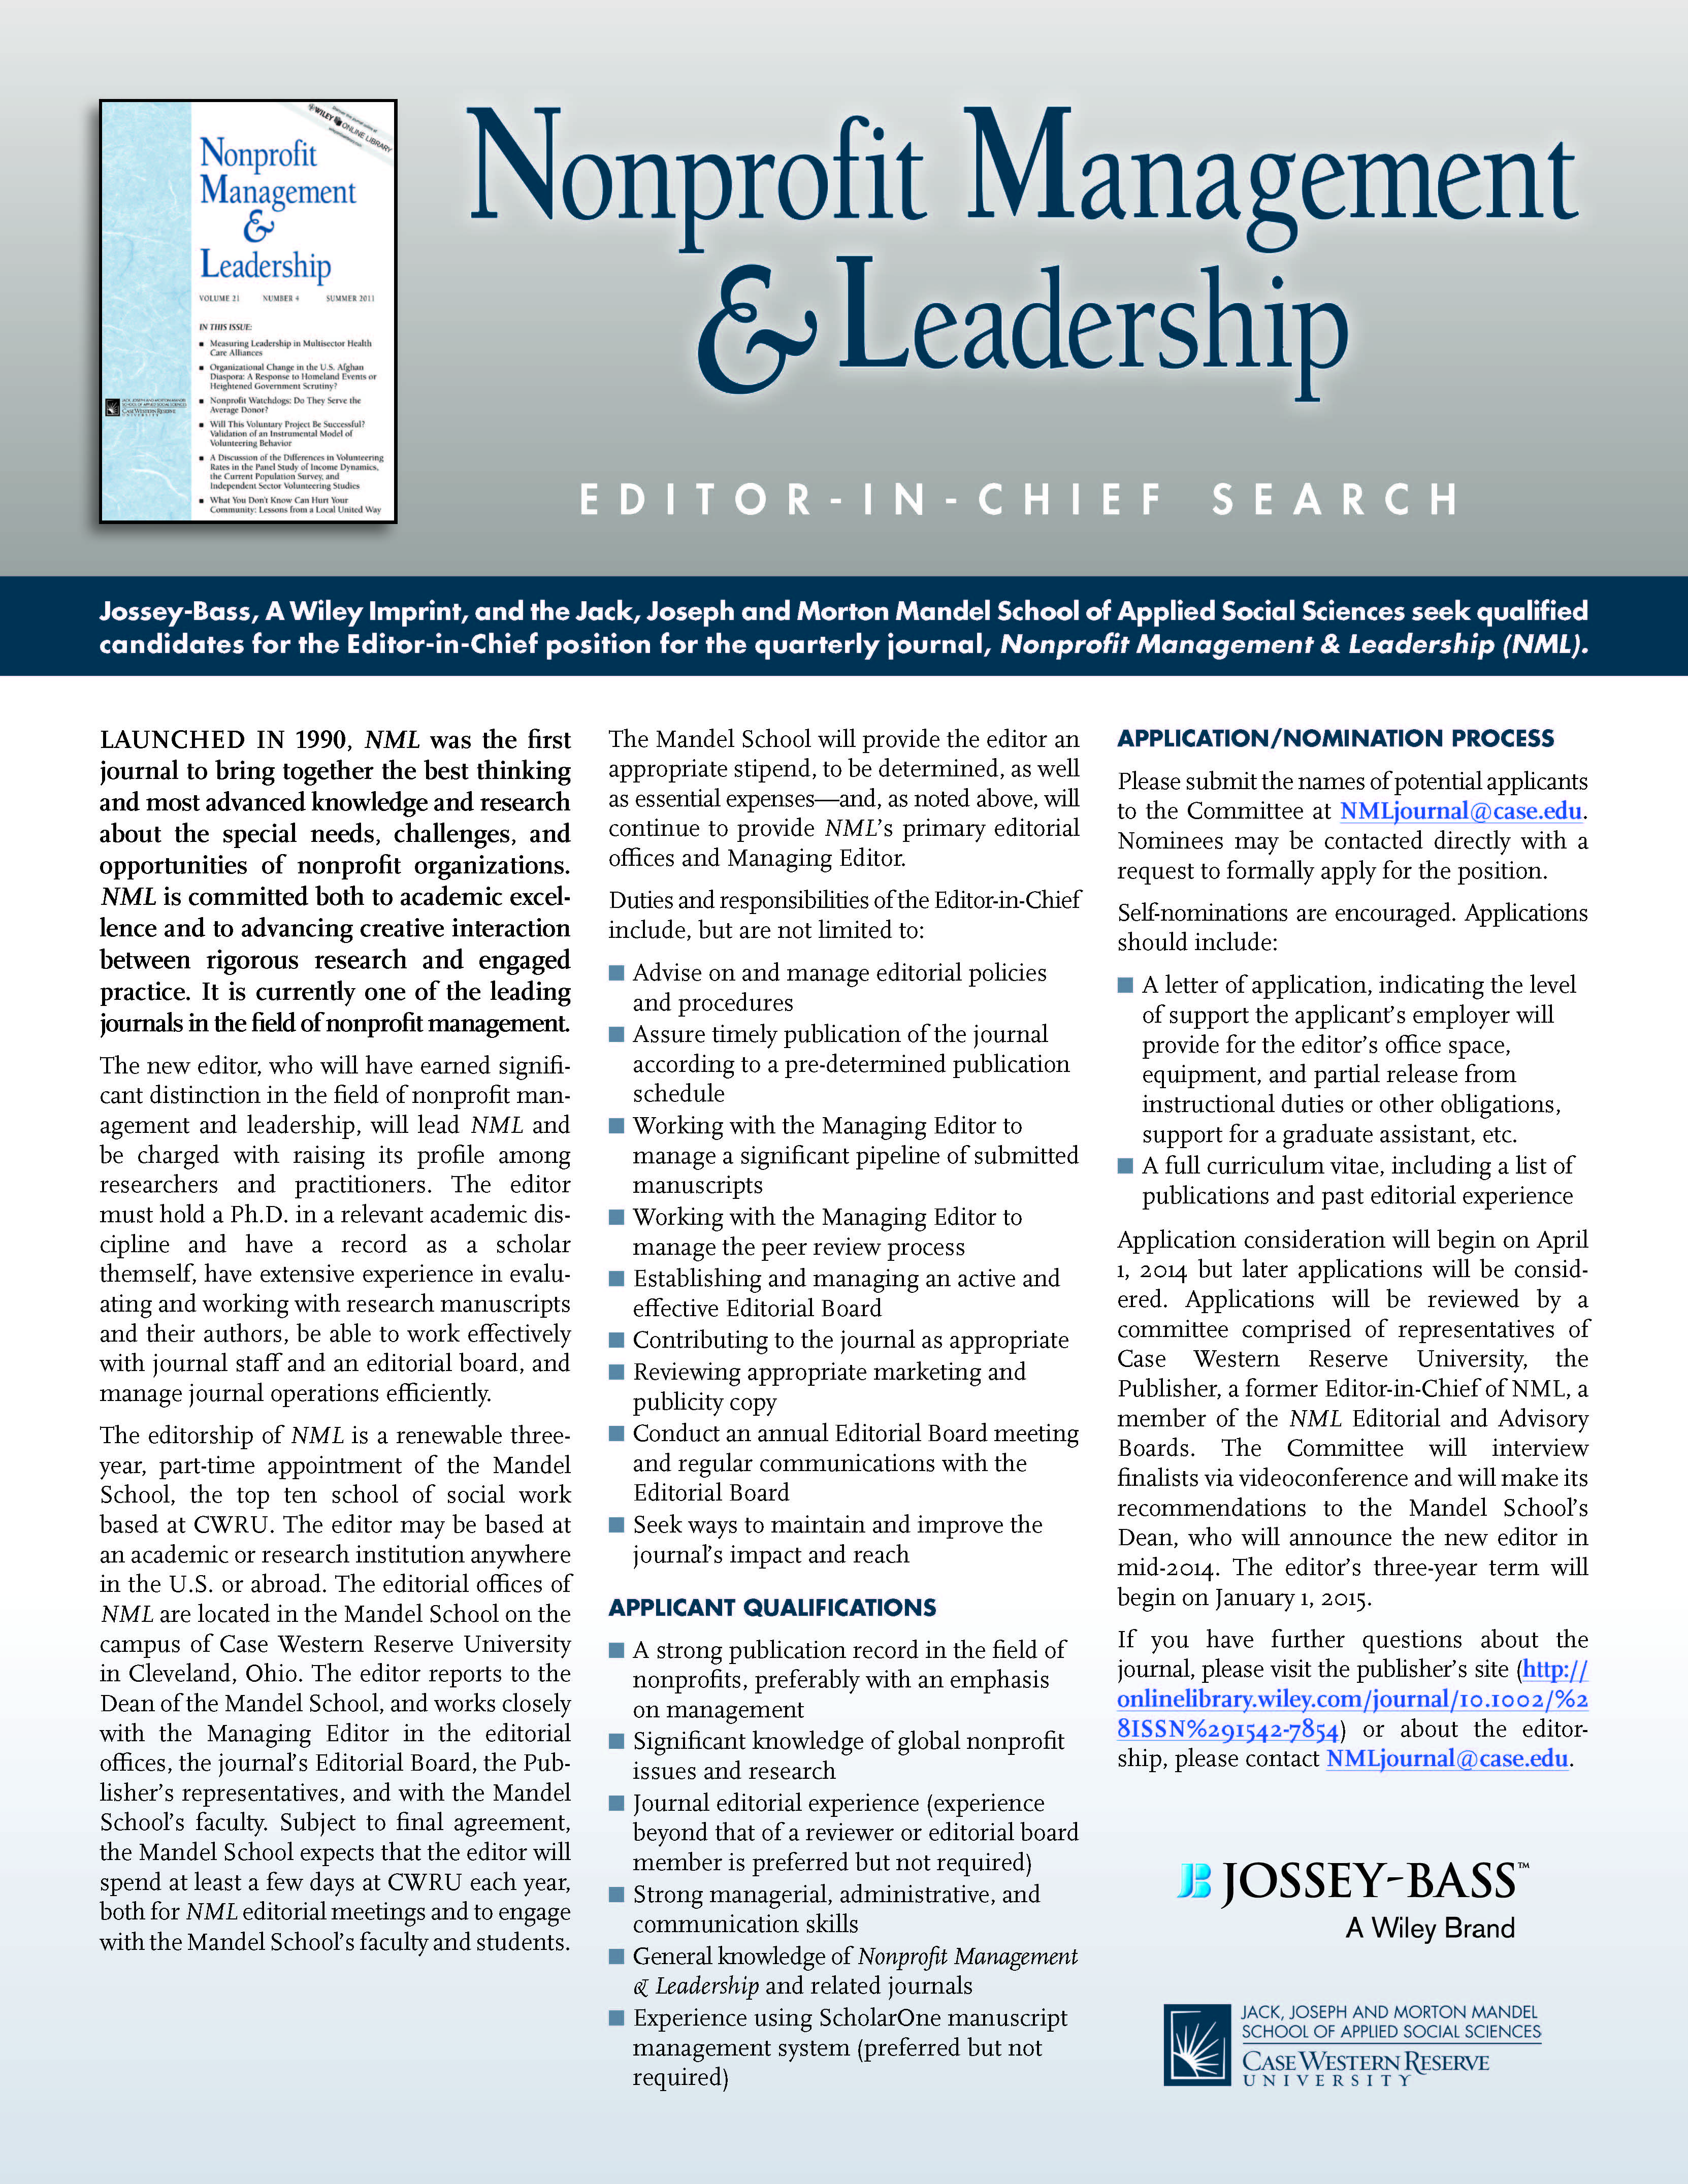 Nonprofit Management & Leadership - Call for Editor - www